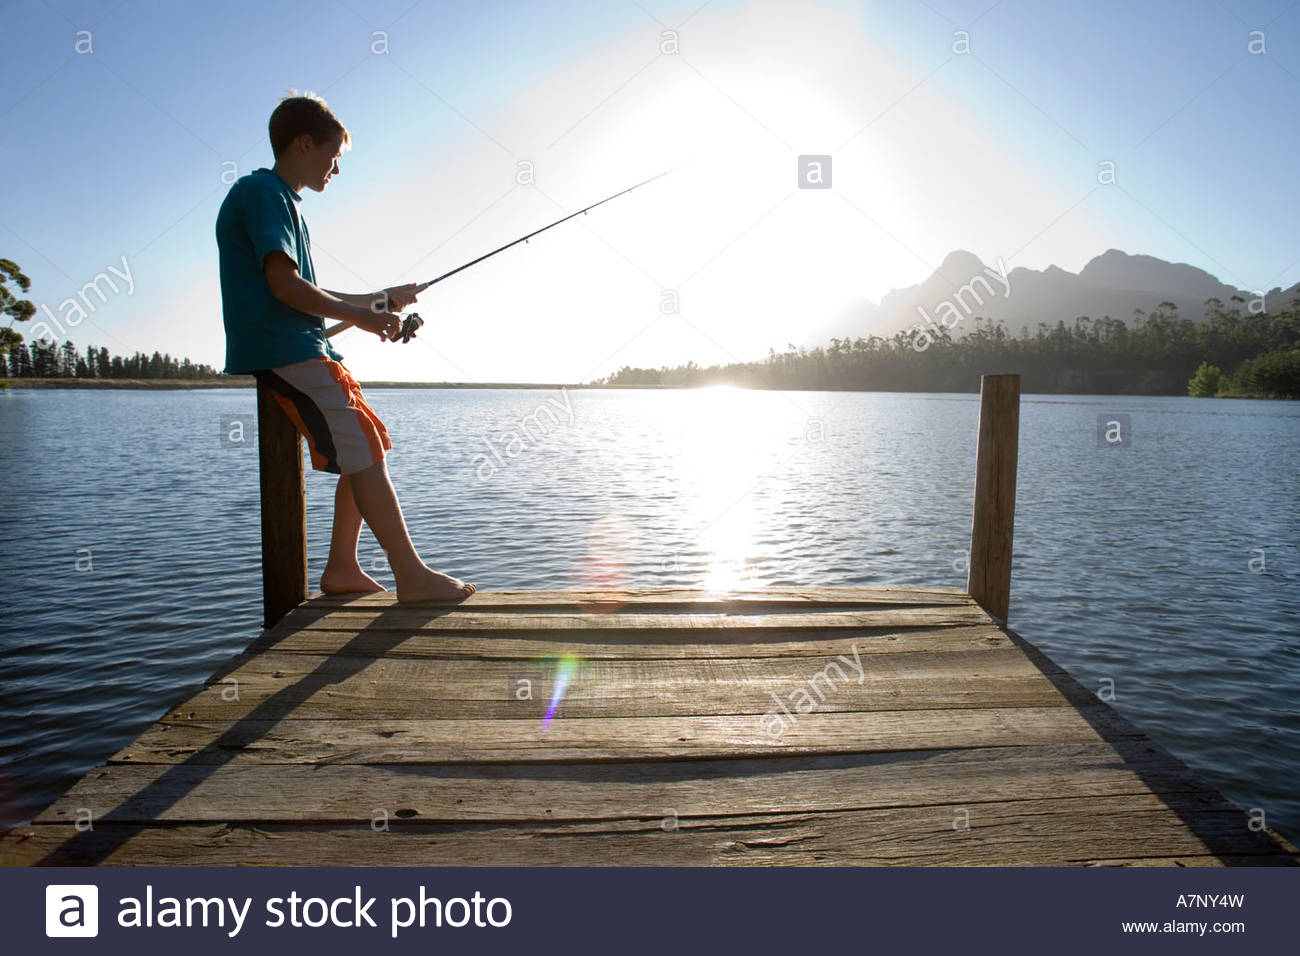 Solitary teenage boy 12 14 standing at edge of jetty fishing in lake on sunny day side view lens flare backlit - Stock Image